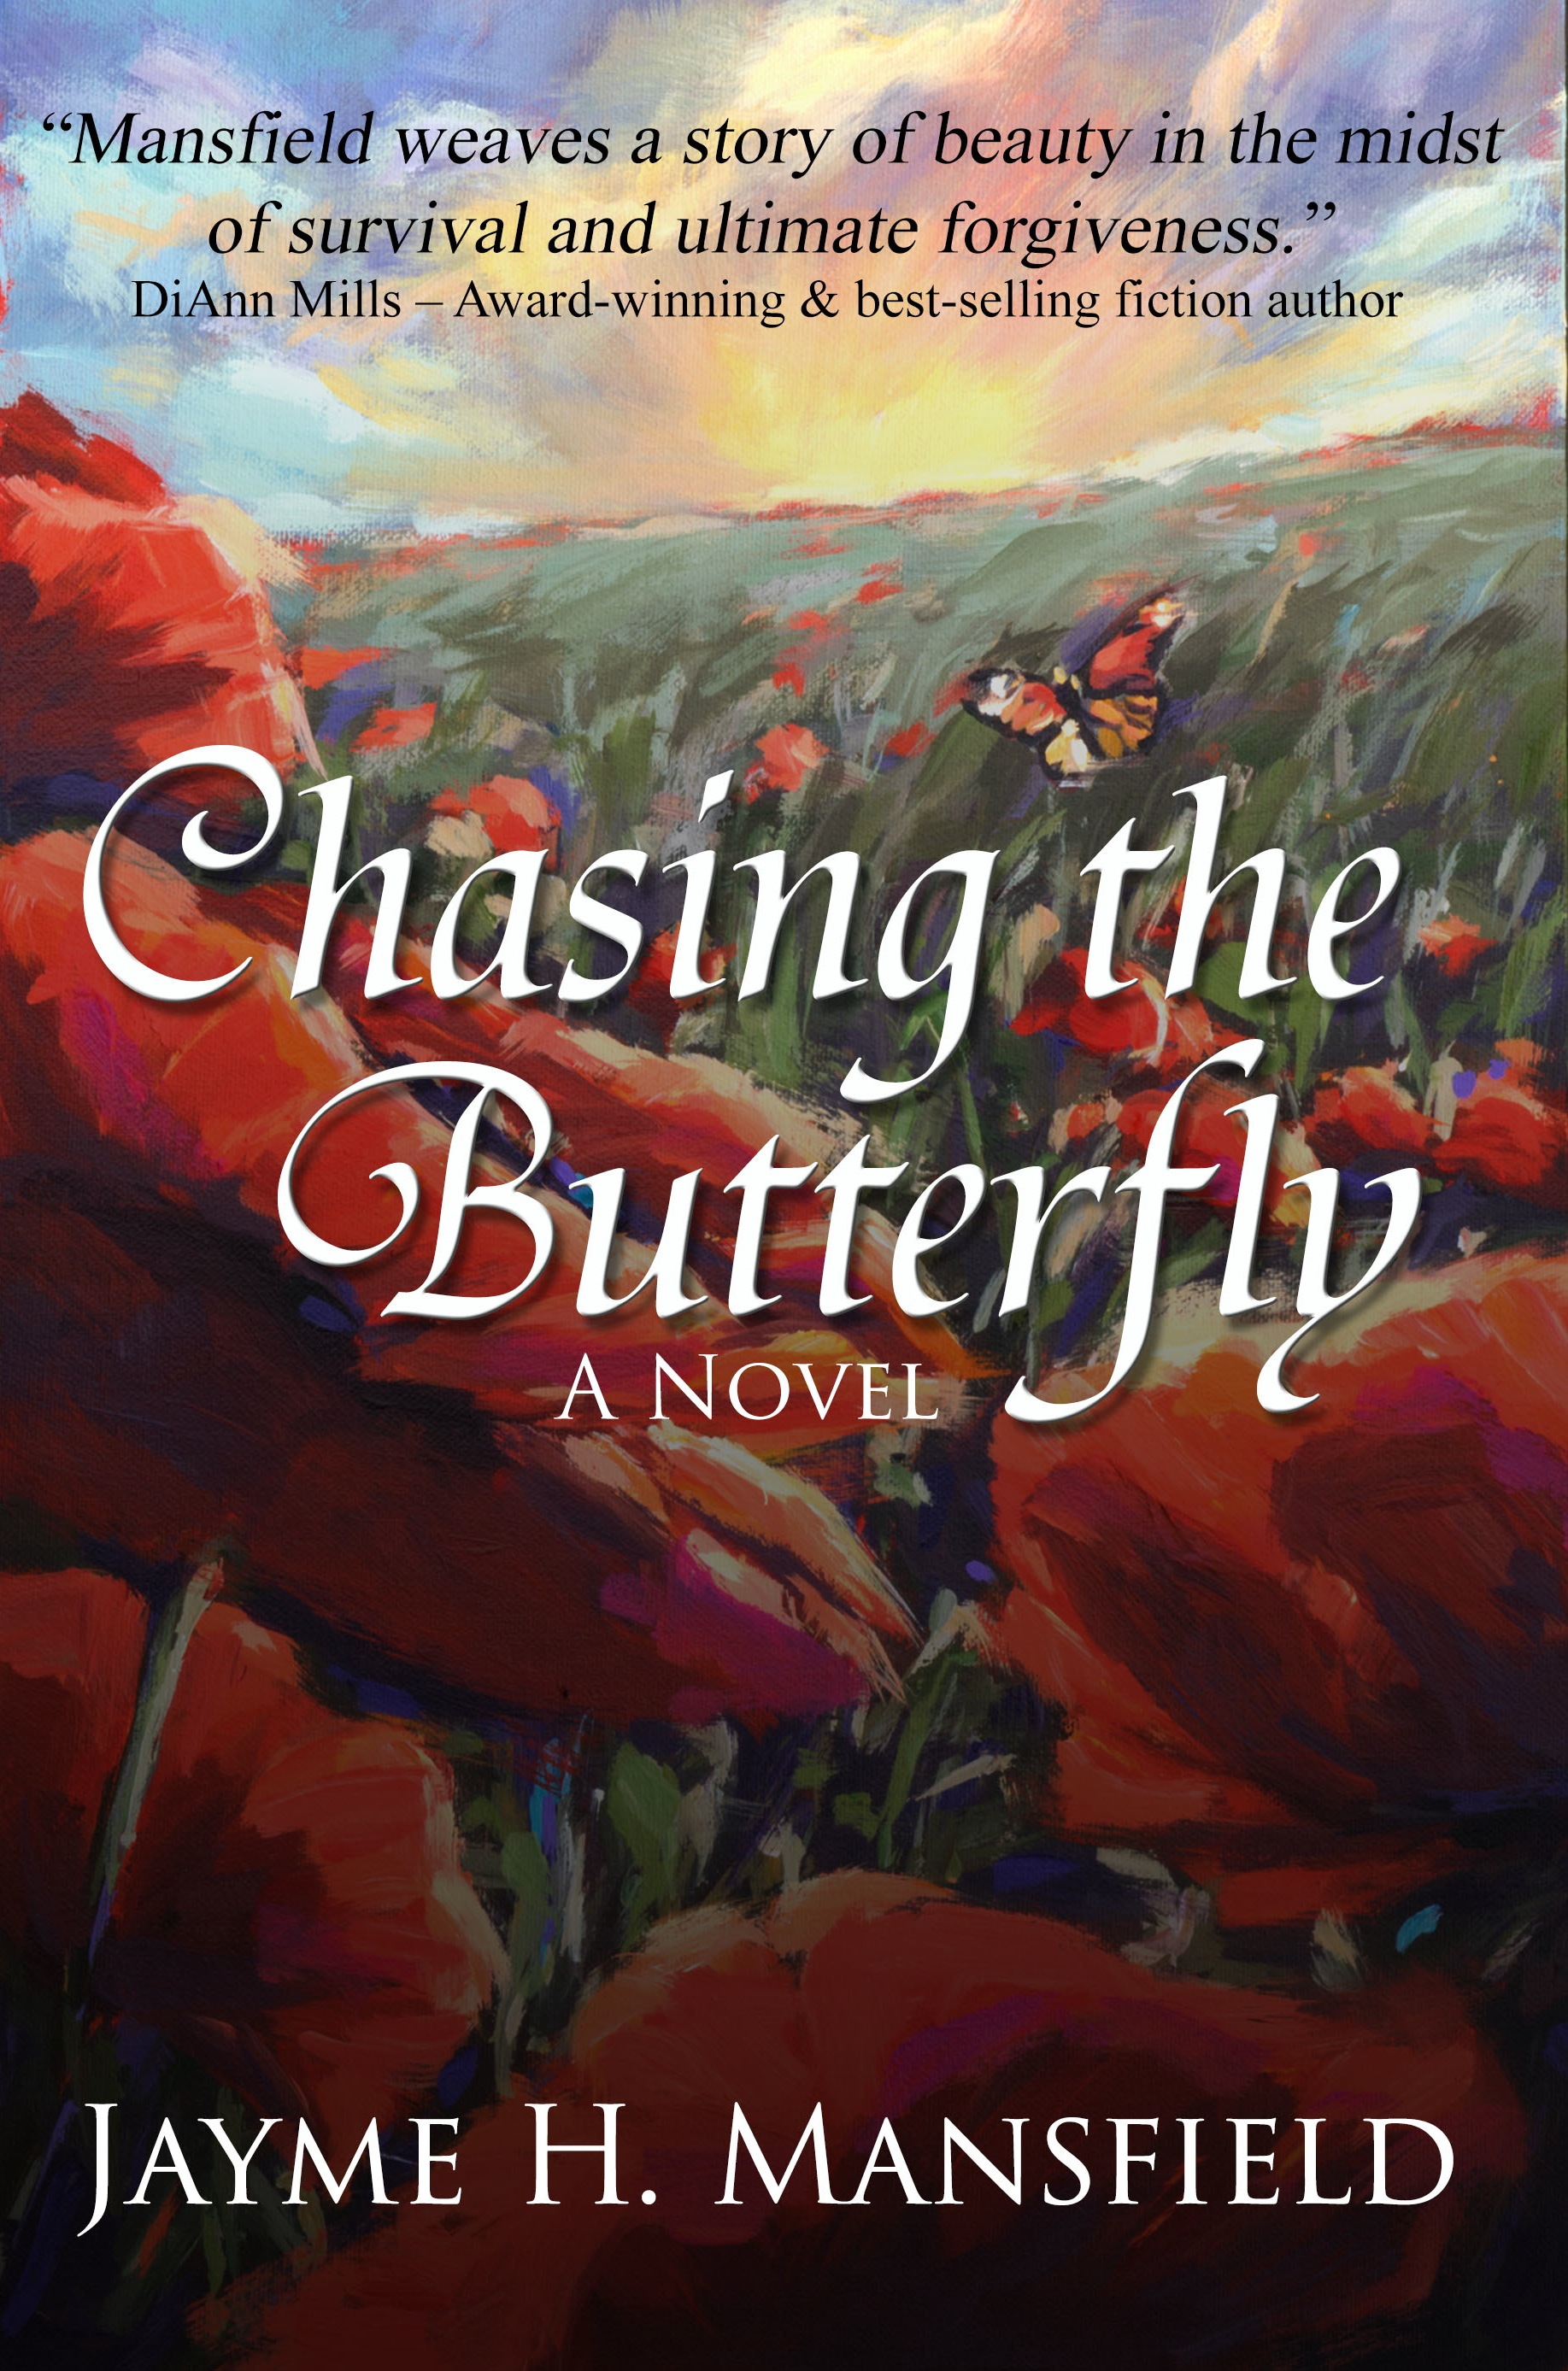 Chasing The Butterfly  by Jayme Mansfield (Oct 14, 2014)